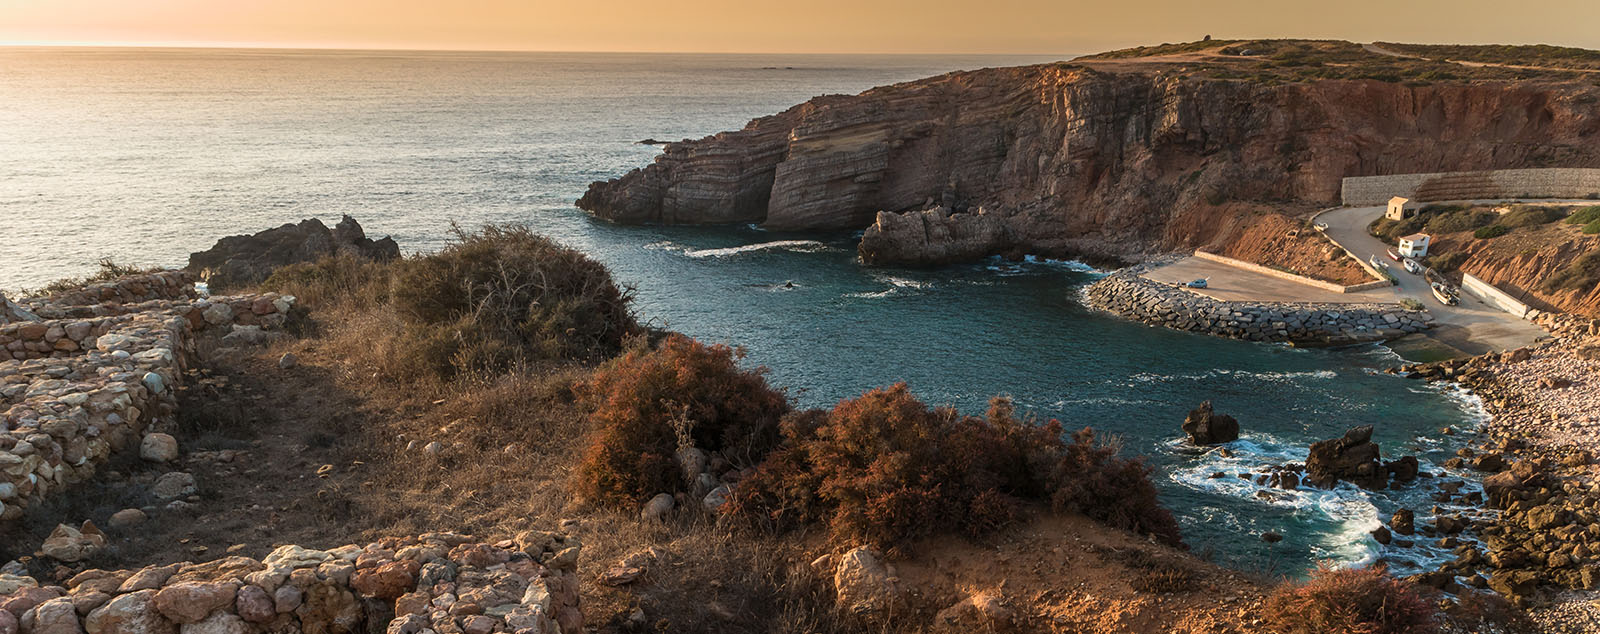 Sunset on Fishermen Settlement in Ponta do Castelo by Carrapateira at Aljezur - Portugal. Summer Atlantic rocky coast view (Costa Vicentina Algarve).